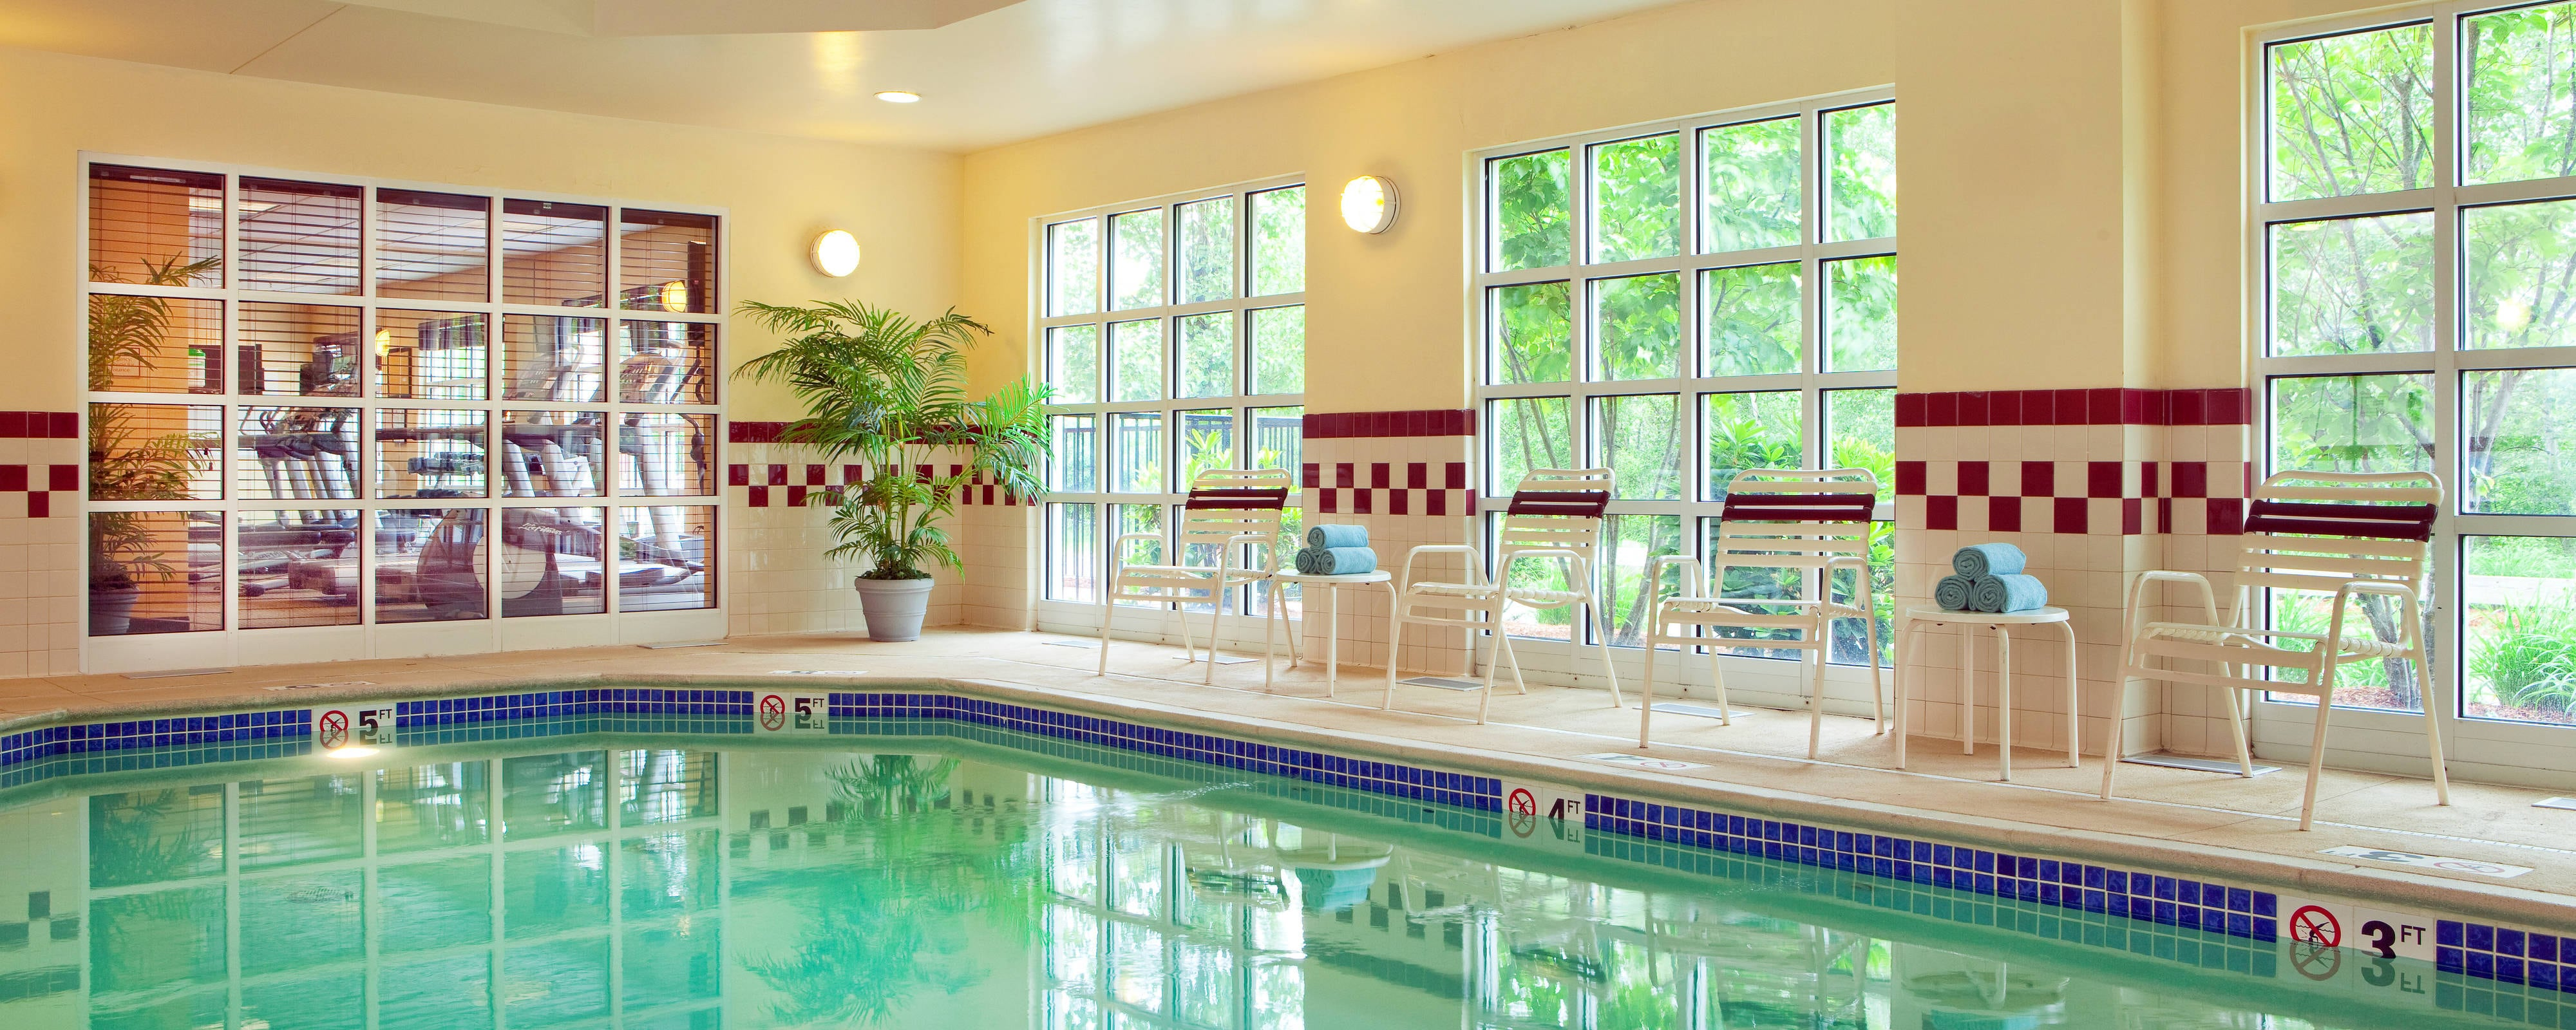 Residence Inn Boston Woburn Indoor Pool